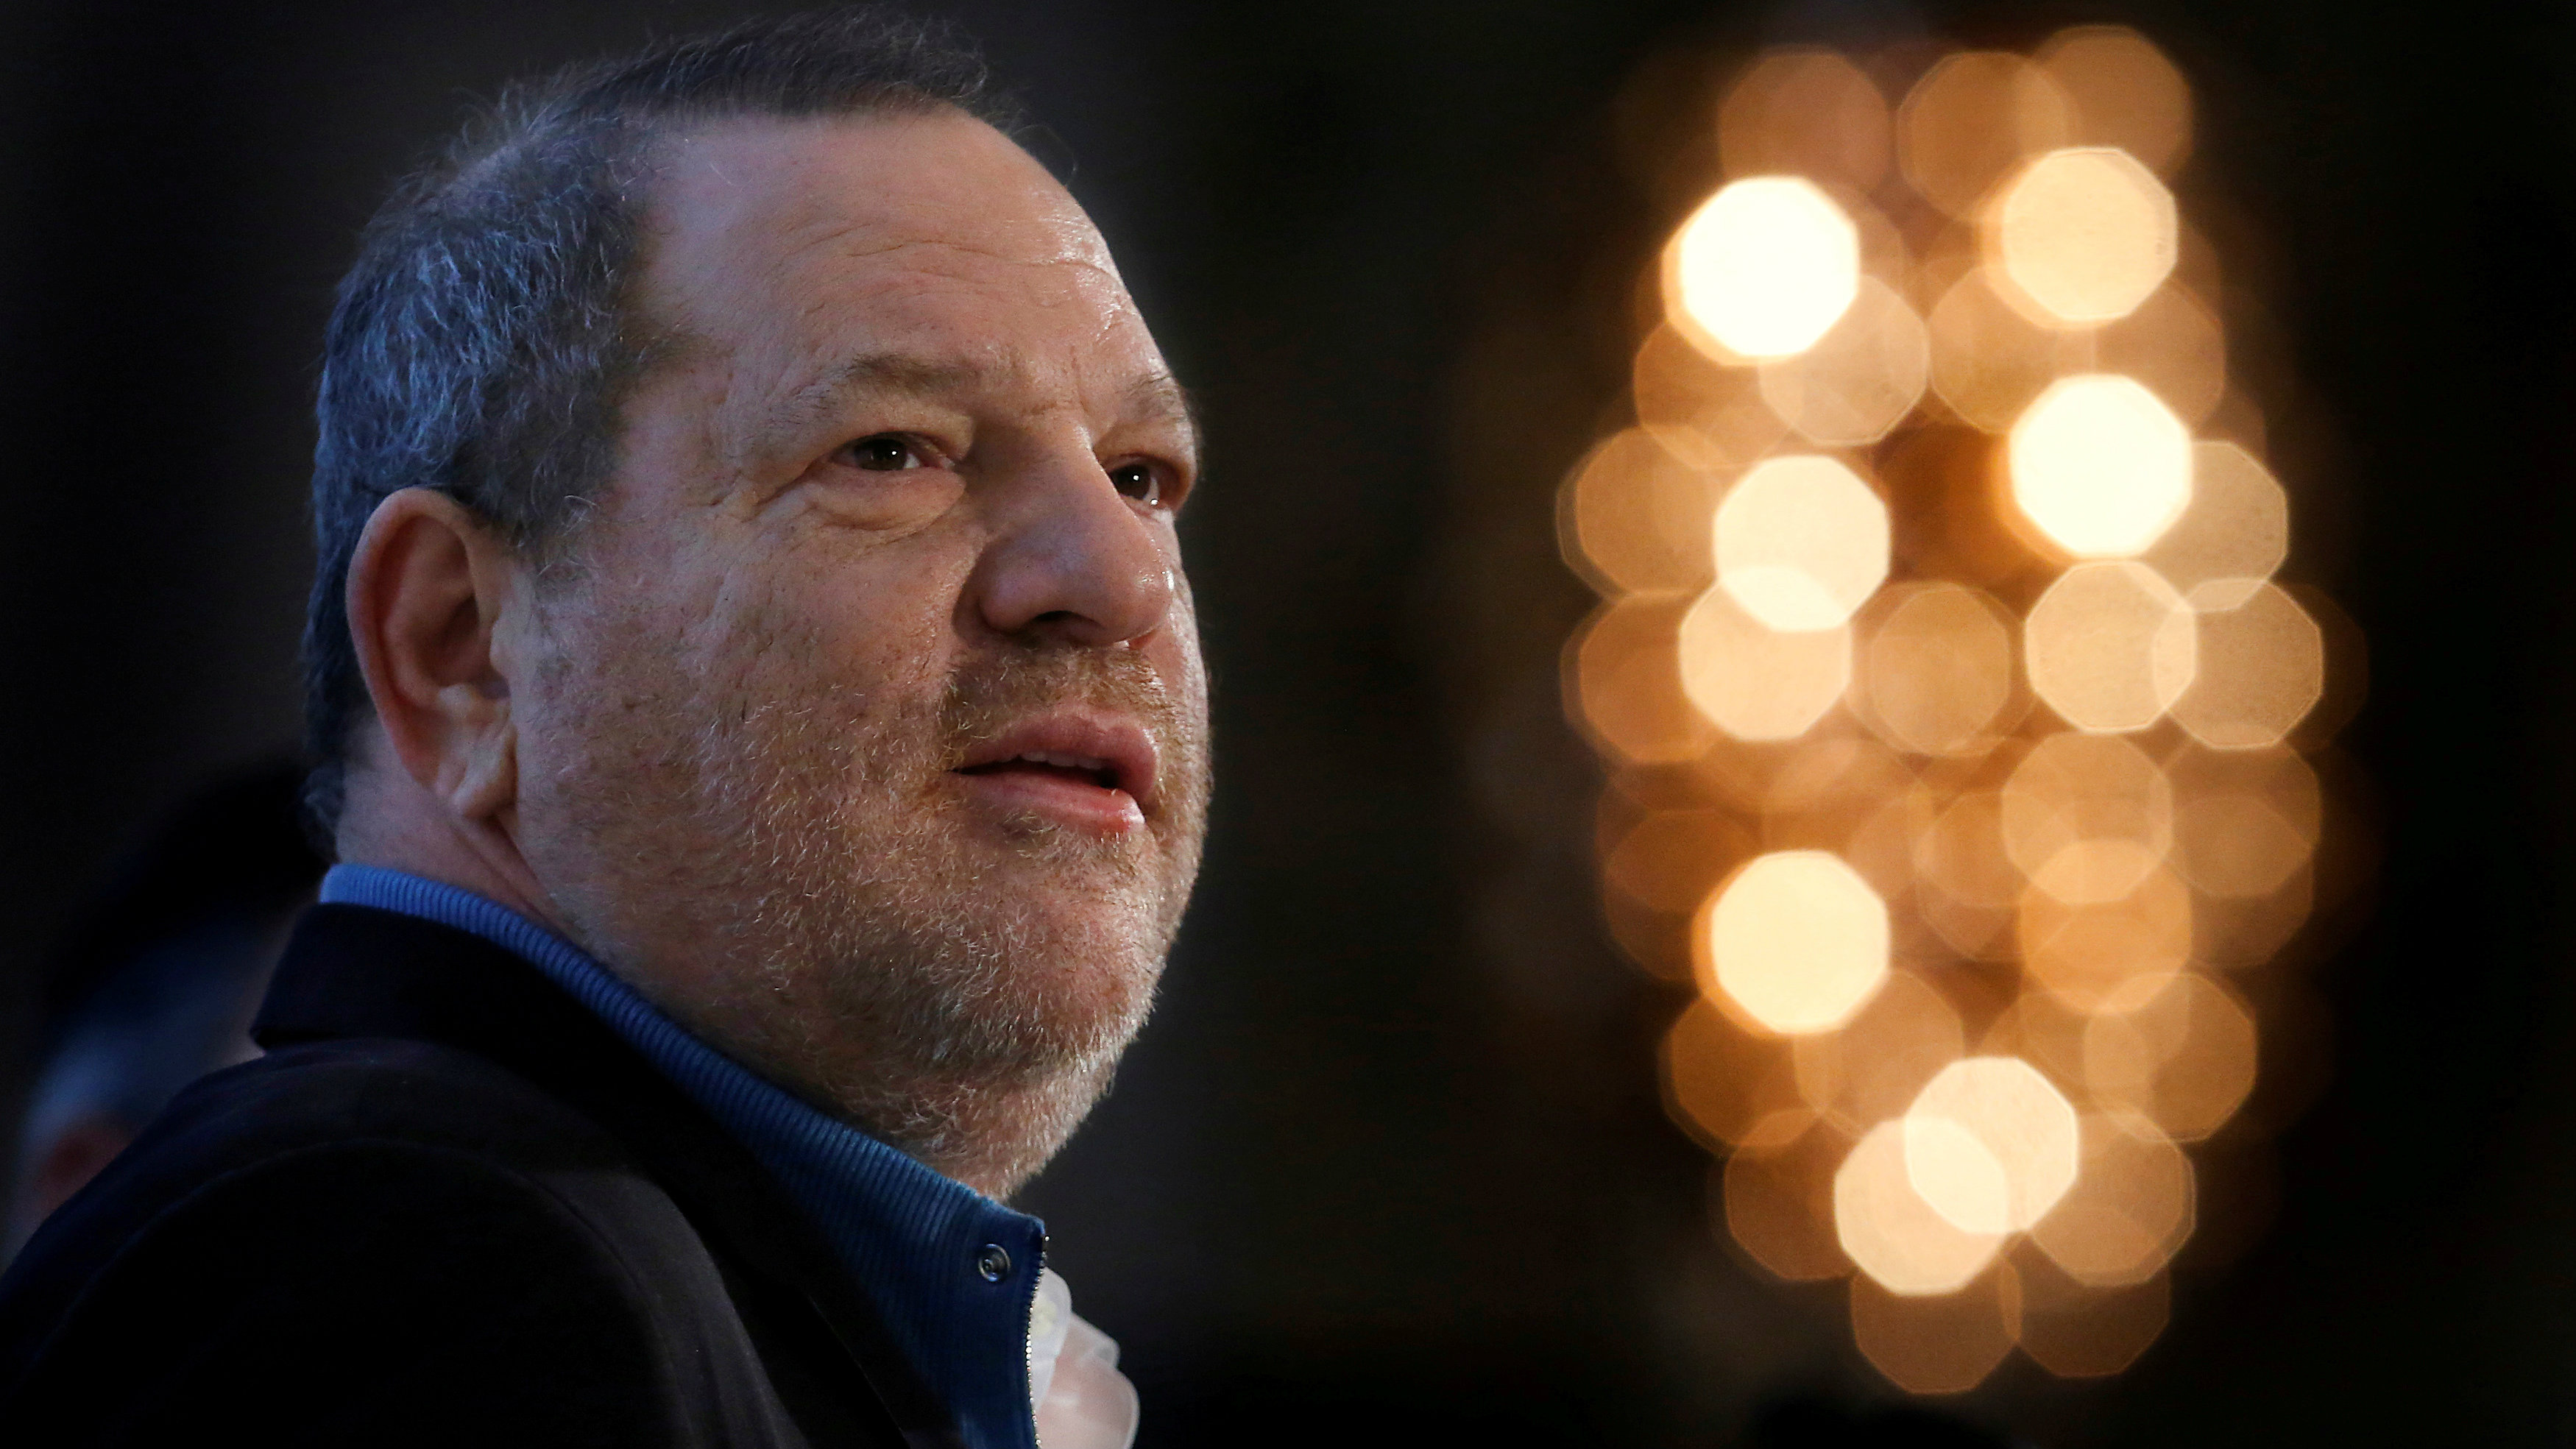 Harvey Weinstein speaks at the UBS 40th Annual Global Media and Communications Conference in New York, NY, U.S., December 5, 2012